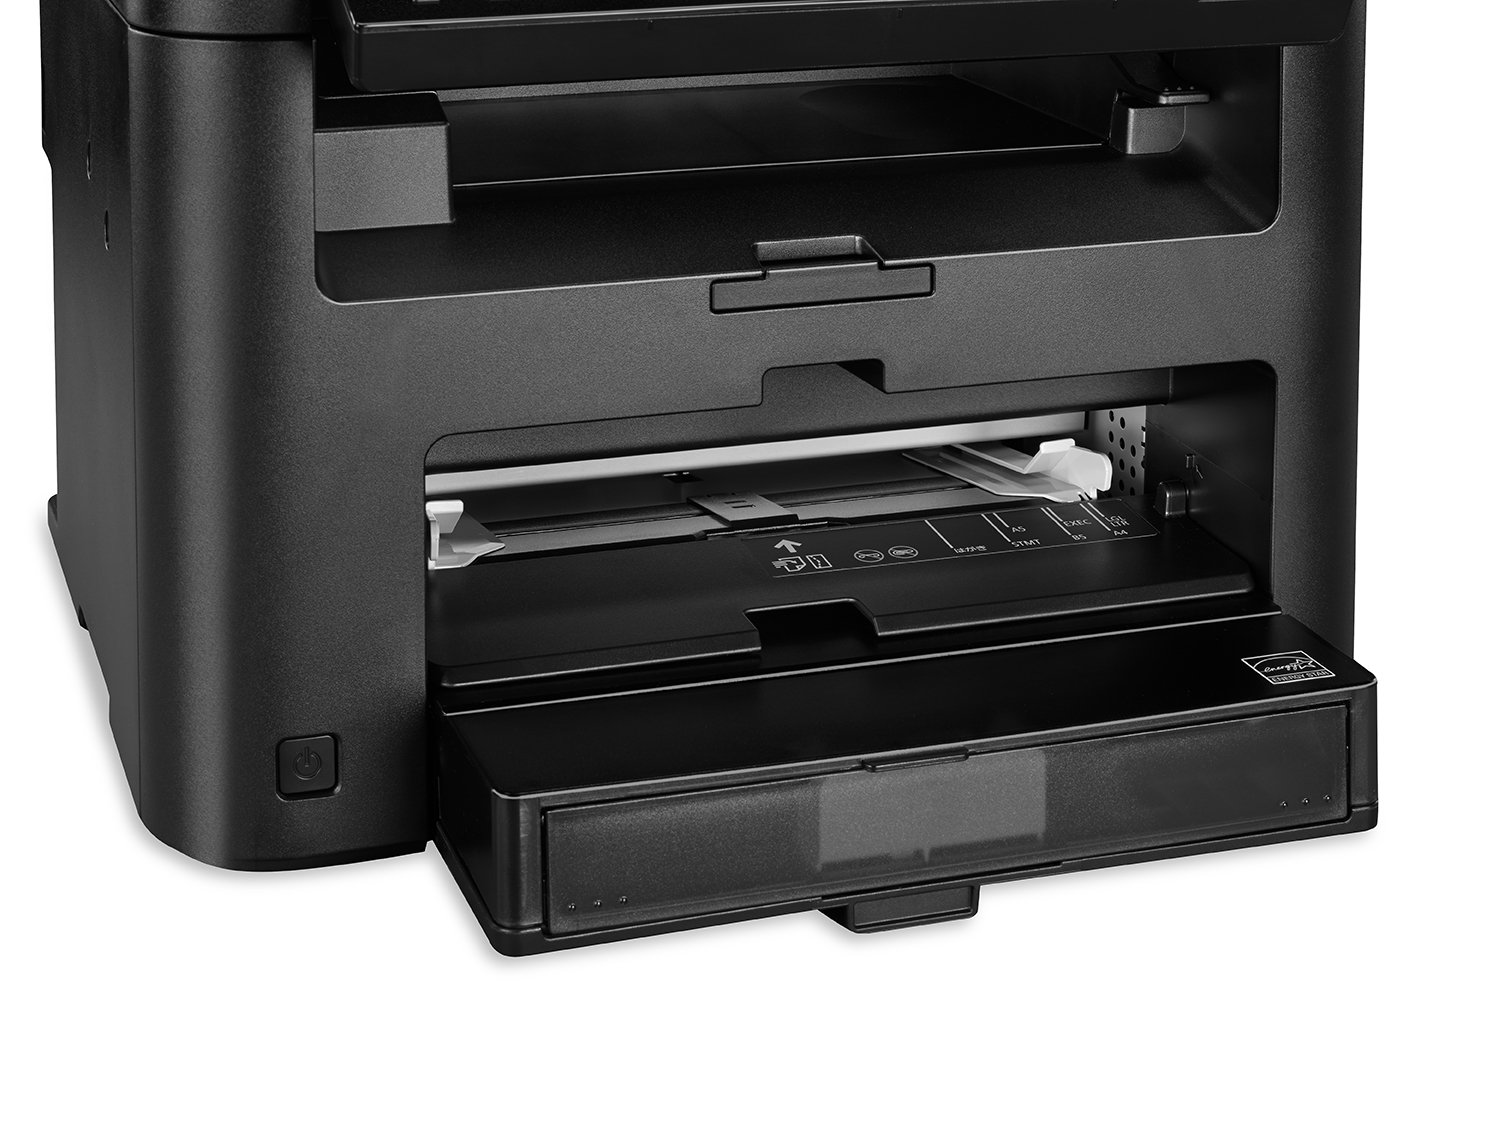 Canon imageCLASS MF236n All in One, Mobile Ready Printer, Black by Canon (Image #4)